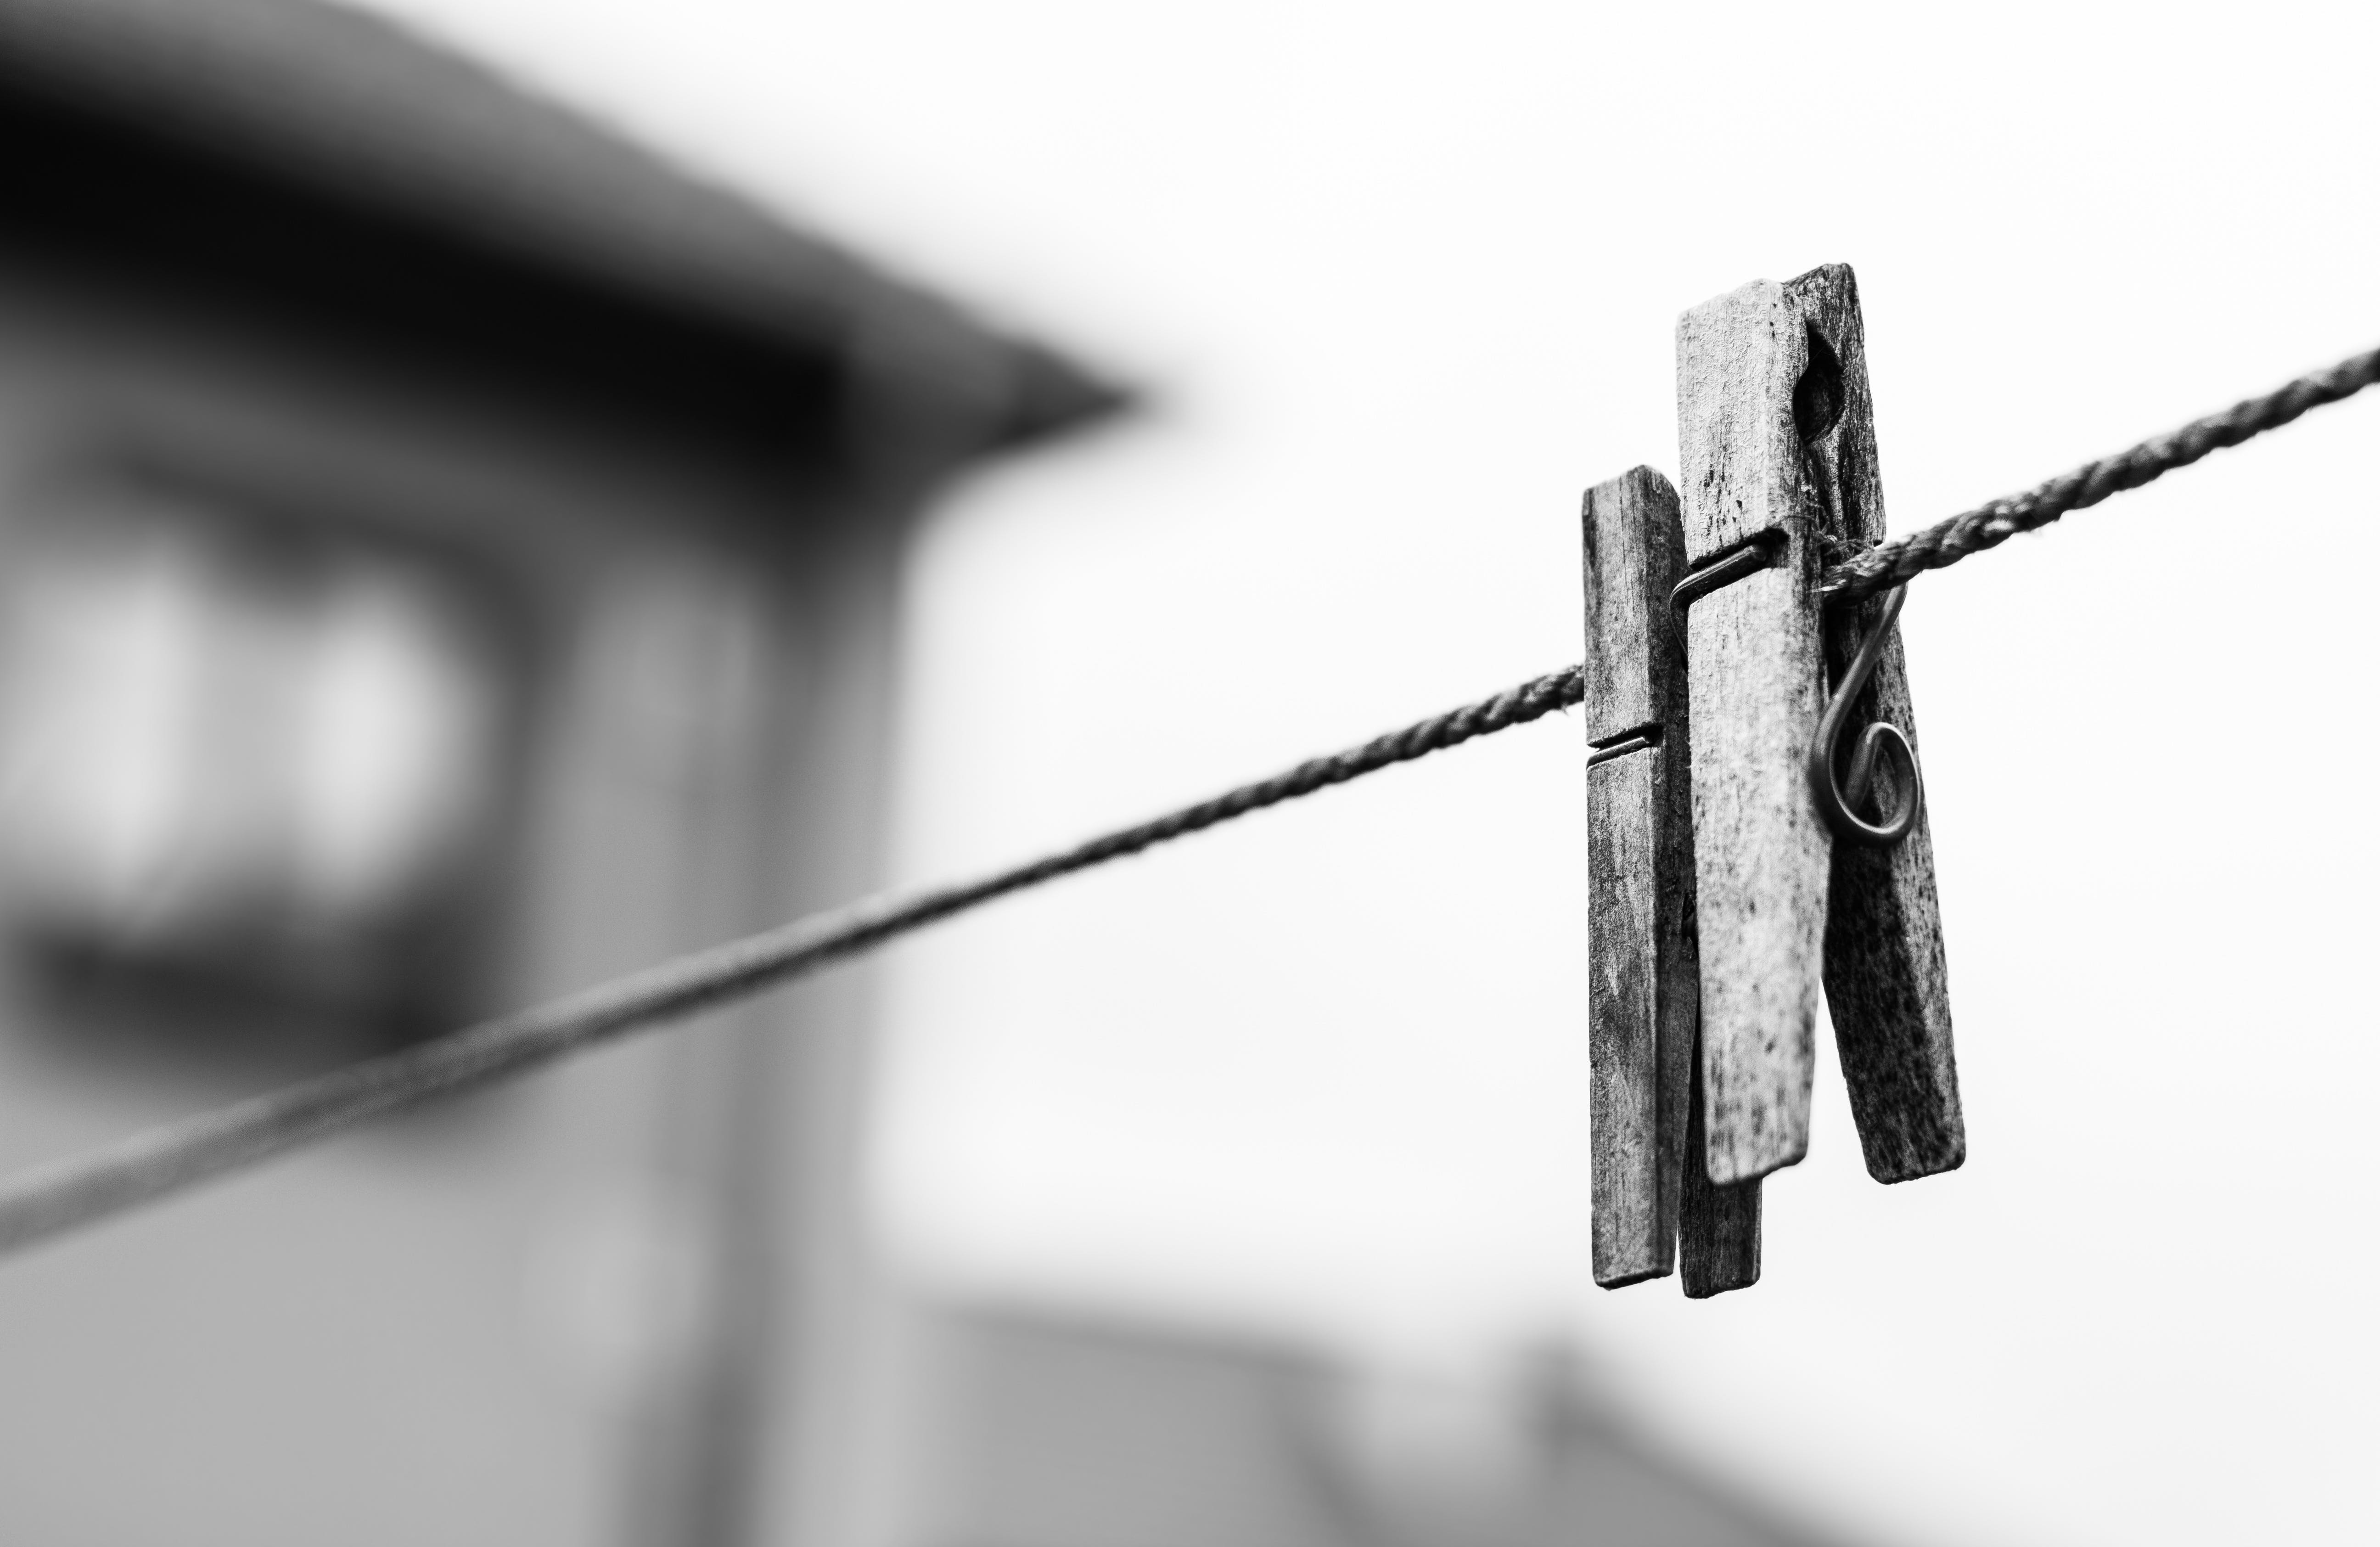 Free stock photo of barbed wire, cable, city, clip